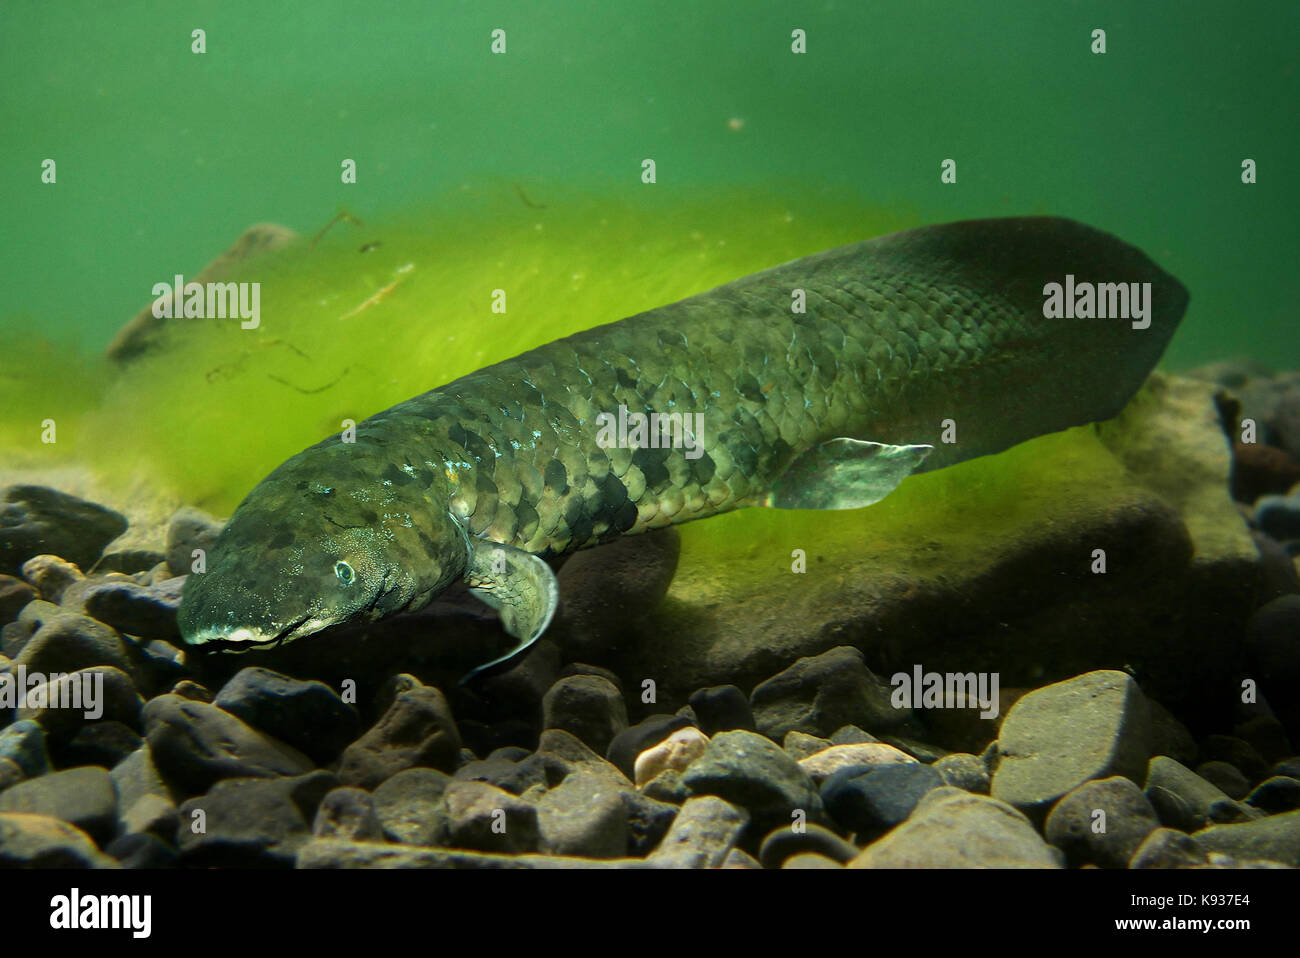 Australian lungfish, Neoceratodus forsteri. It is one of six representatives of the ancient air-breathing Dipnoi Stock Photo